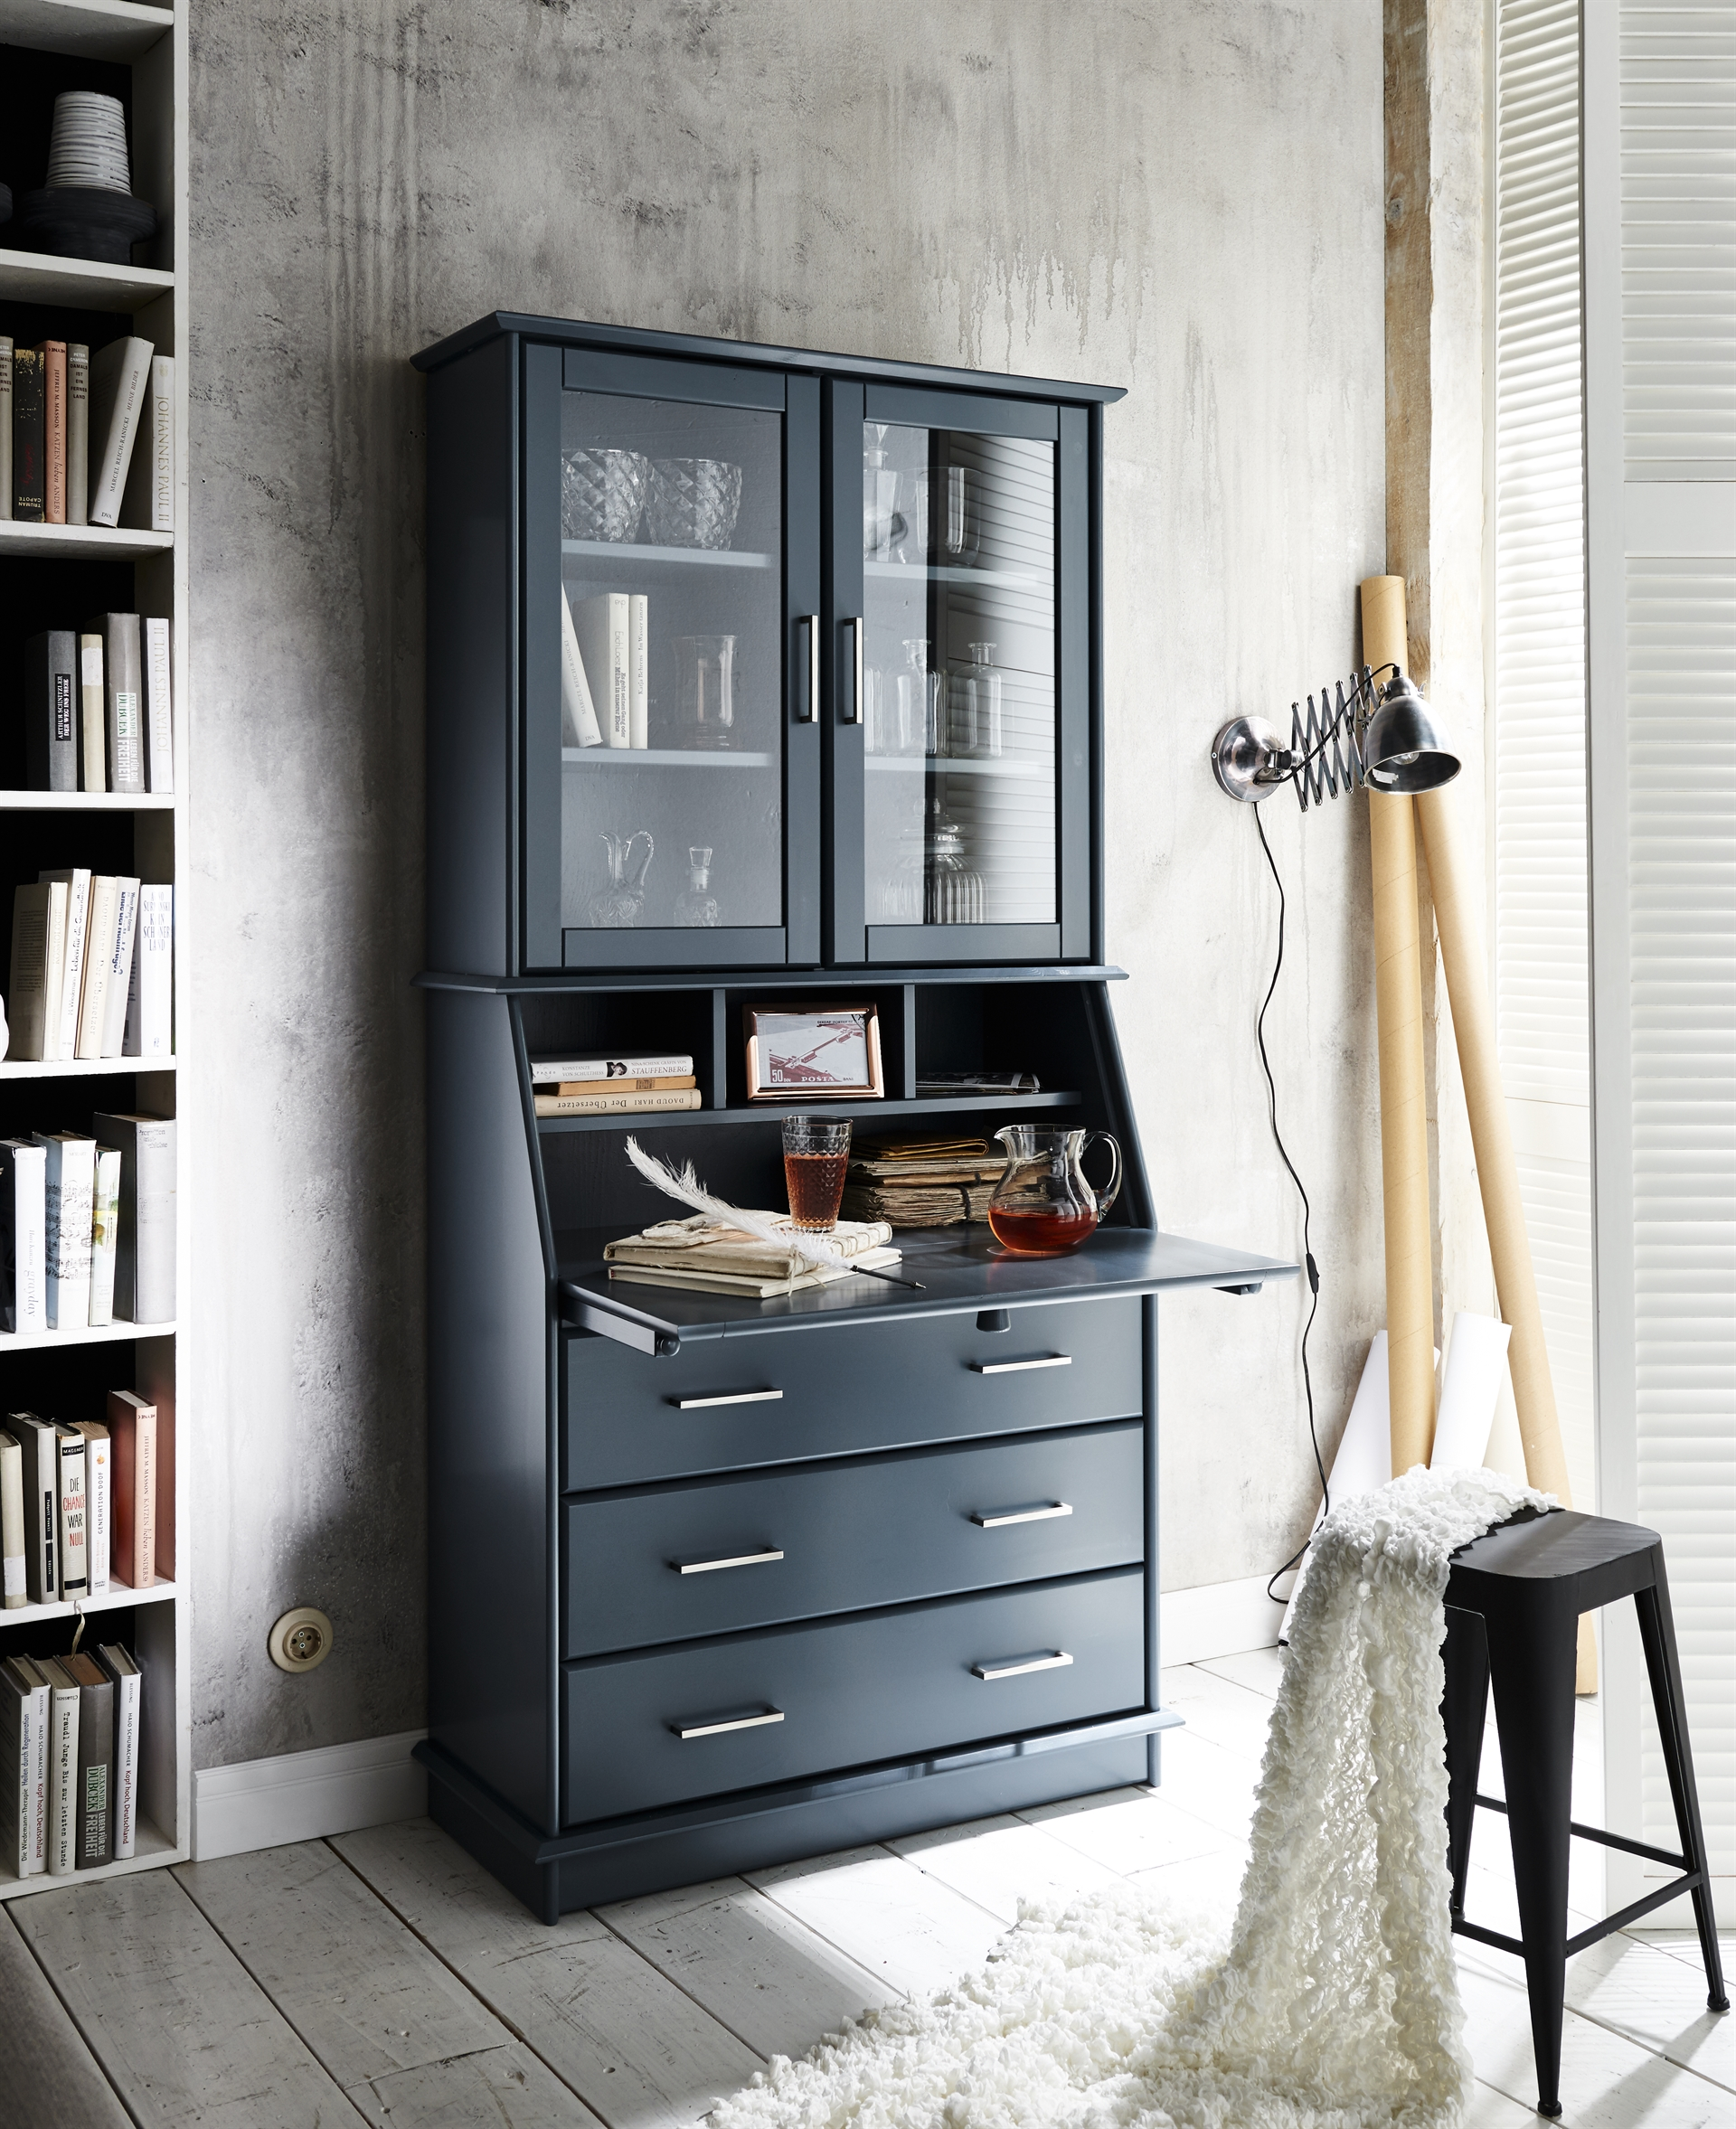 sekret r ultima kiefer massiv dam 2000 ltd co kg. Black Bedroom Furniture Sets. Home Design Ideas